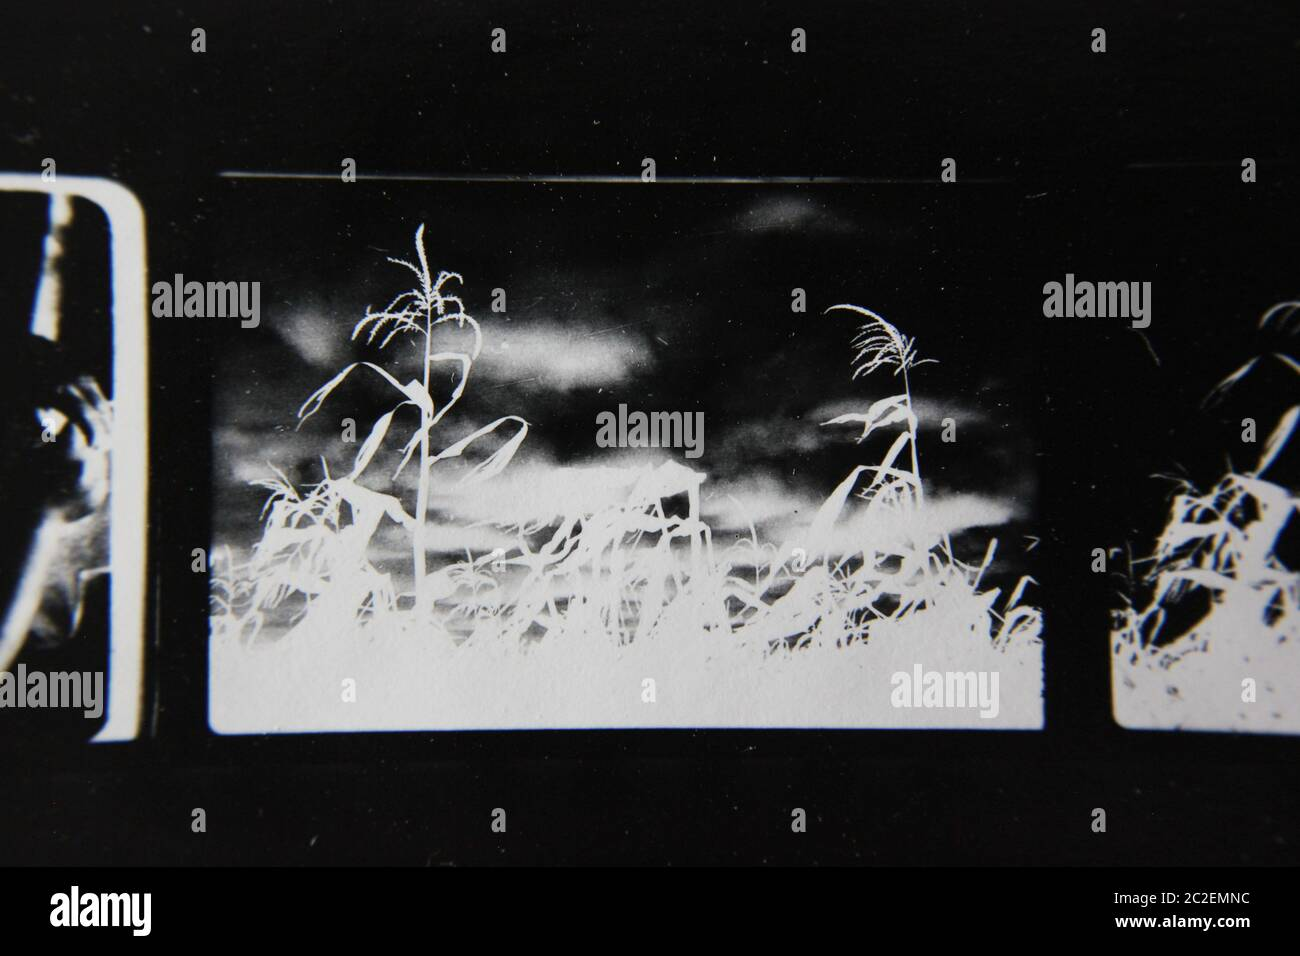 Fine 70s vintage contact print black and white extreme photography of wild plants growing in the fields. Stock Photo